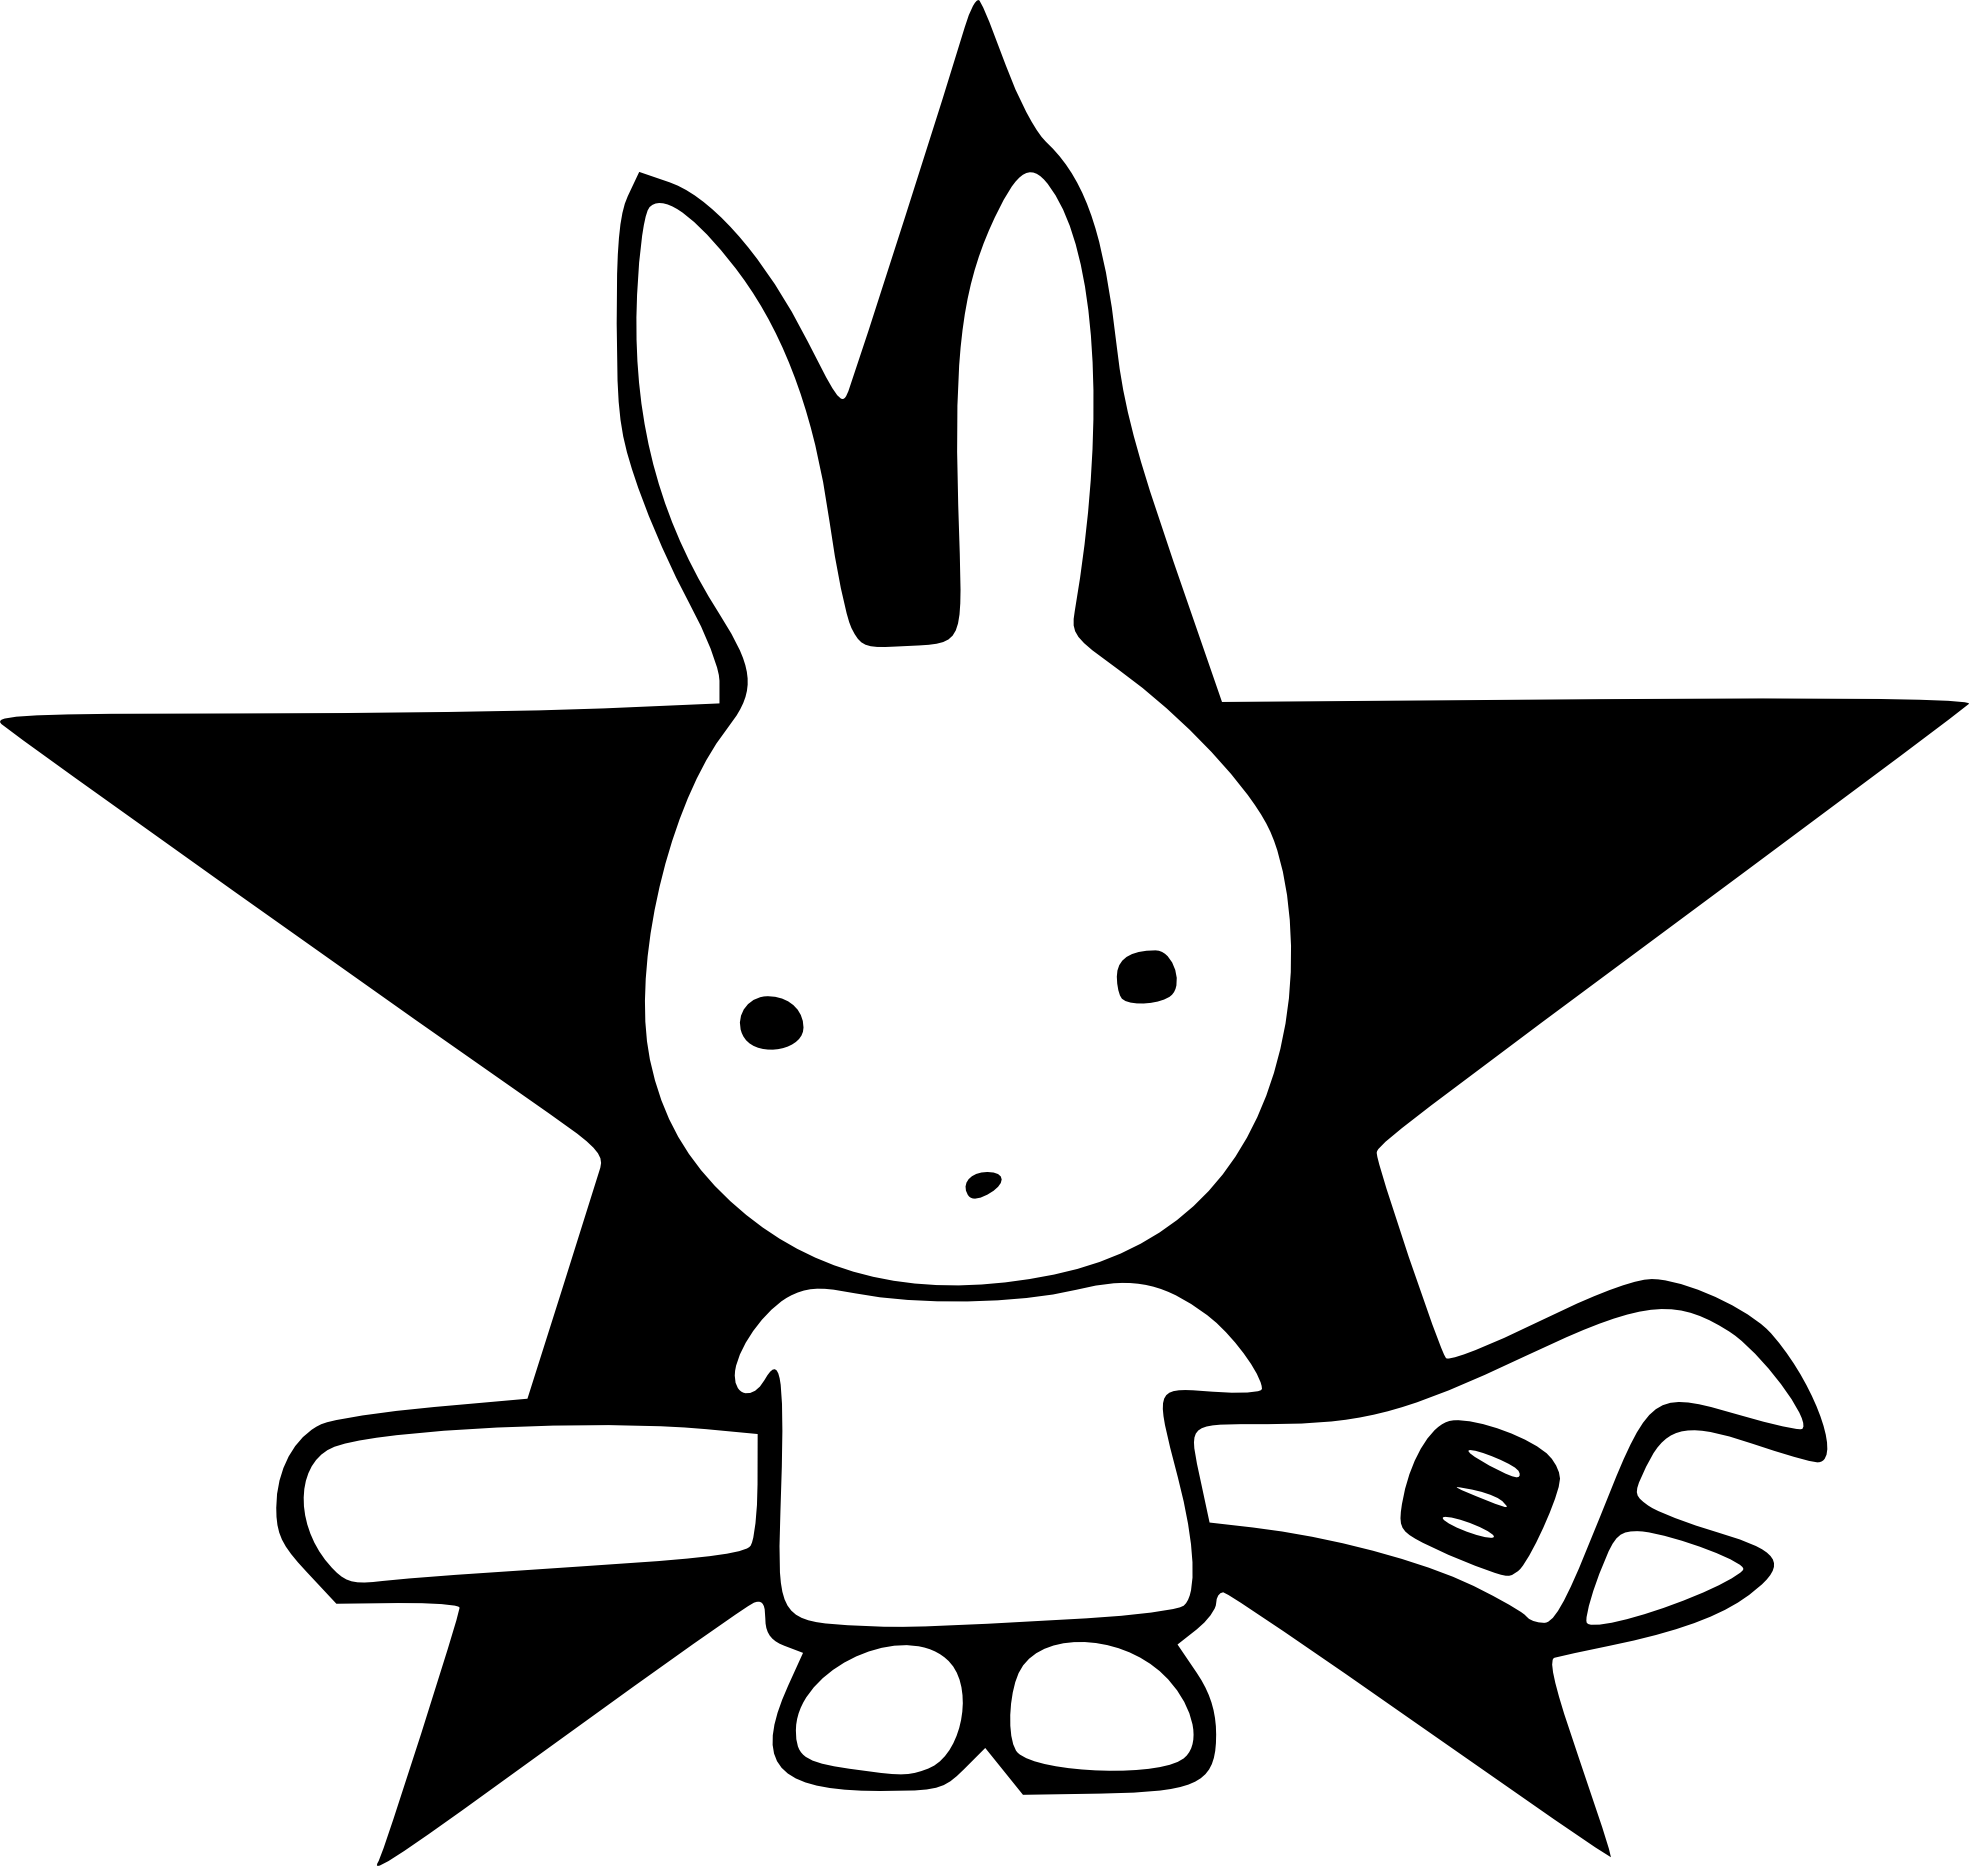 Star student clipart black and white image black and white library Star Line Clipart | Clipart Panda - Free Clipart Images image black and white library